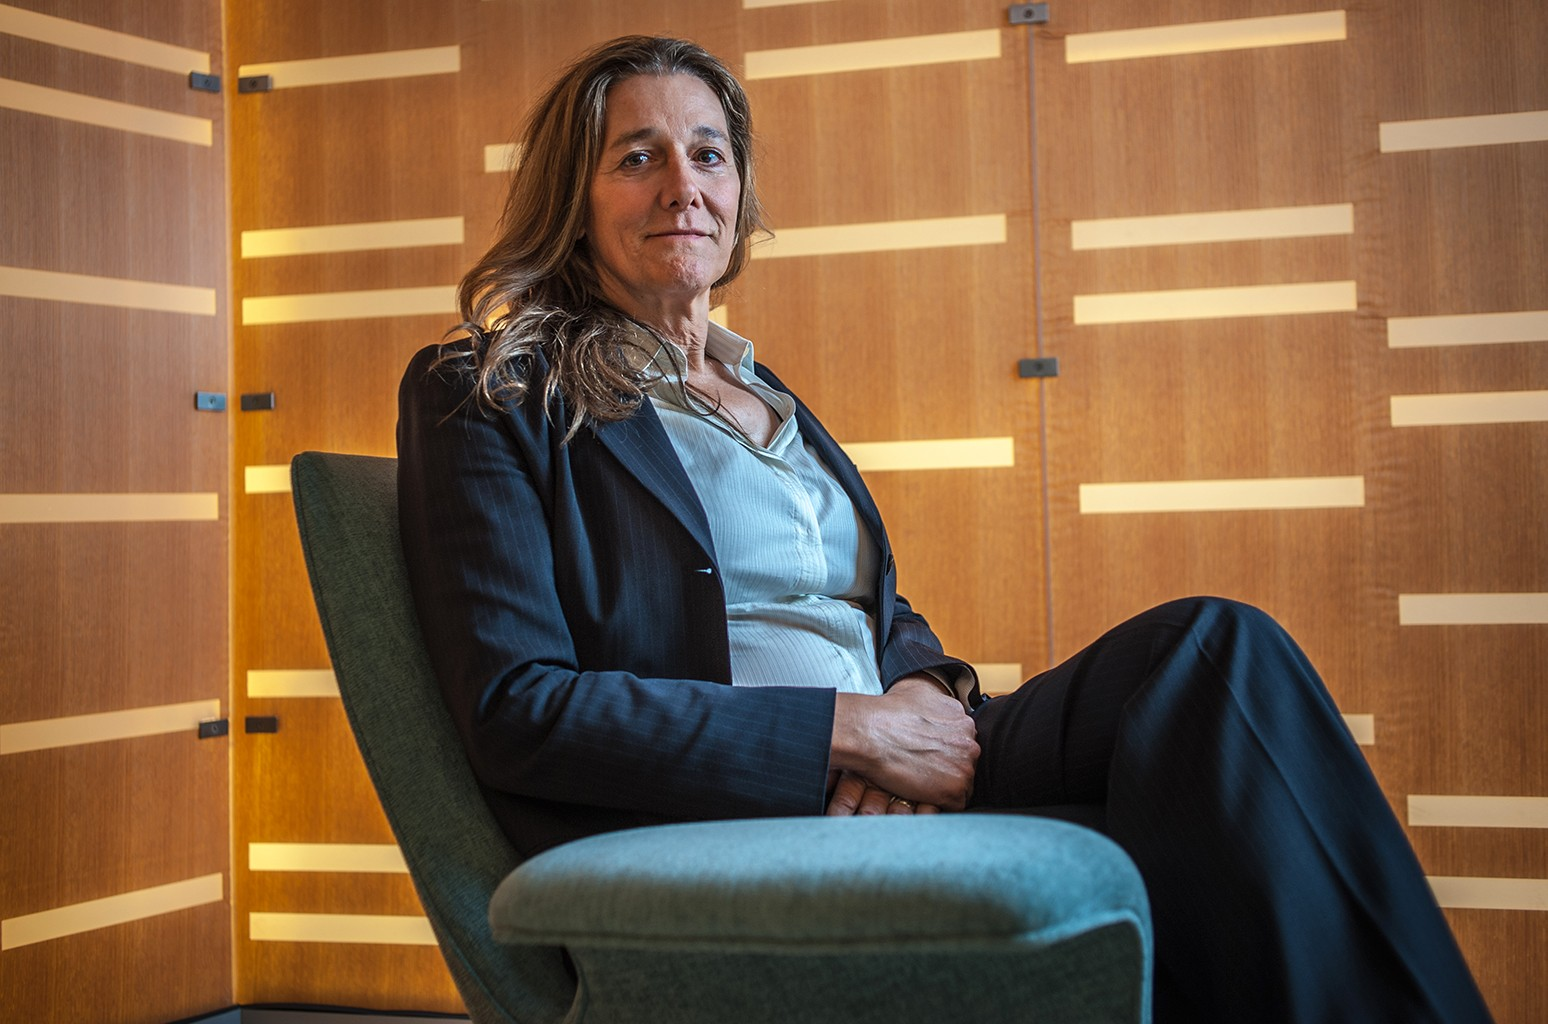 Martine Rothblatt in 2014.